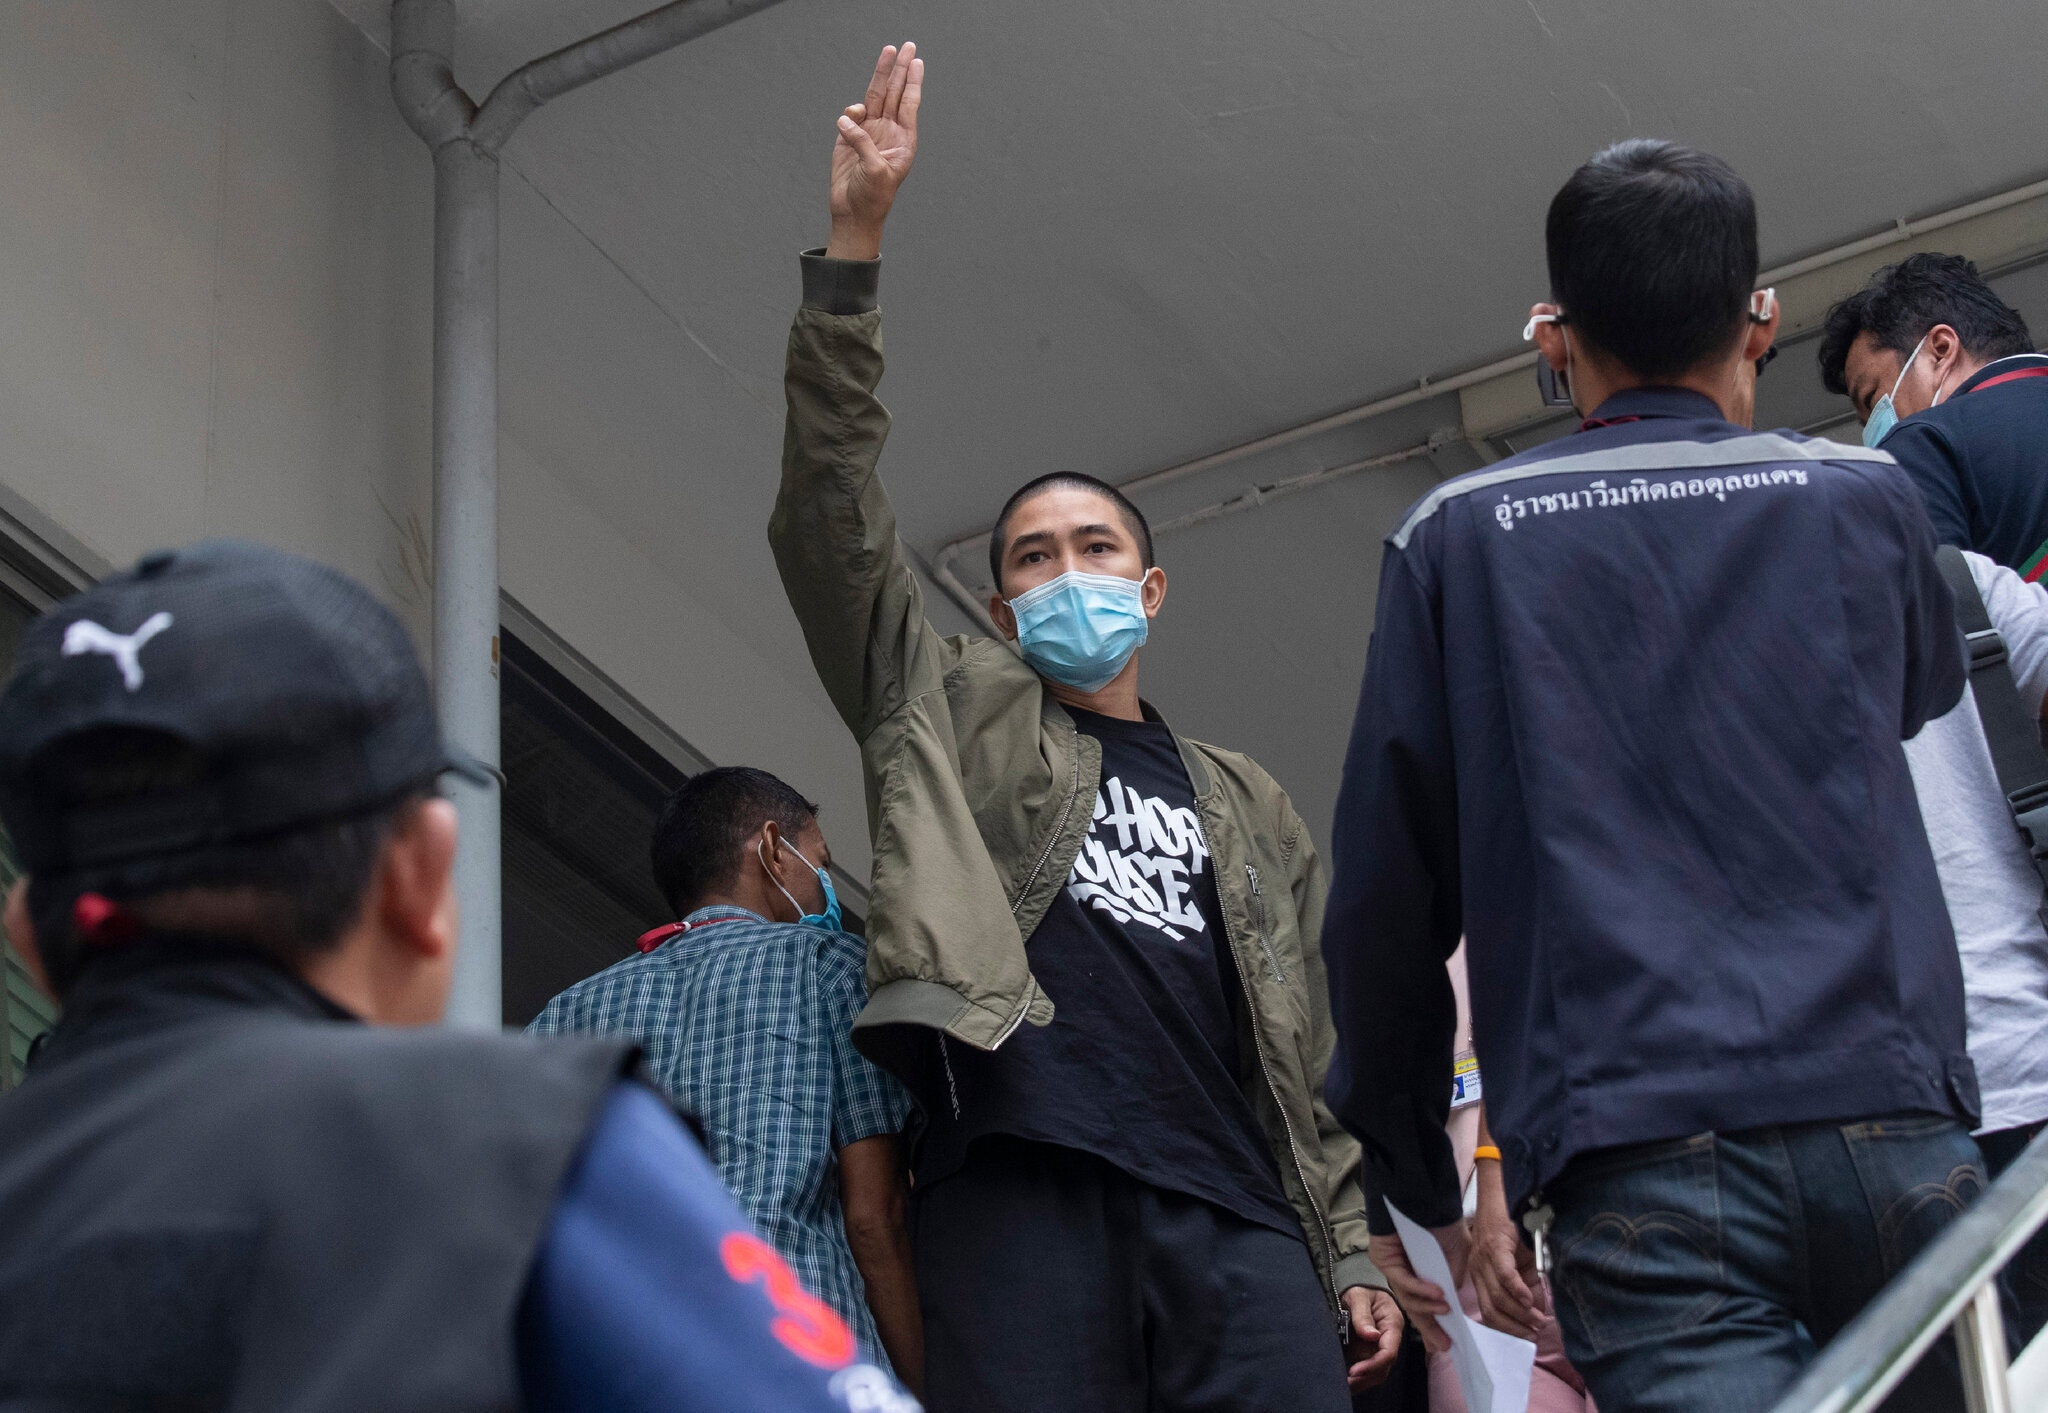 Thailand Police Arrest Activists, Escalating Protest Crackdown